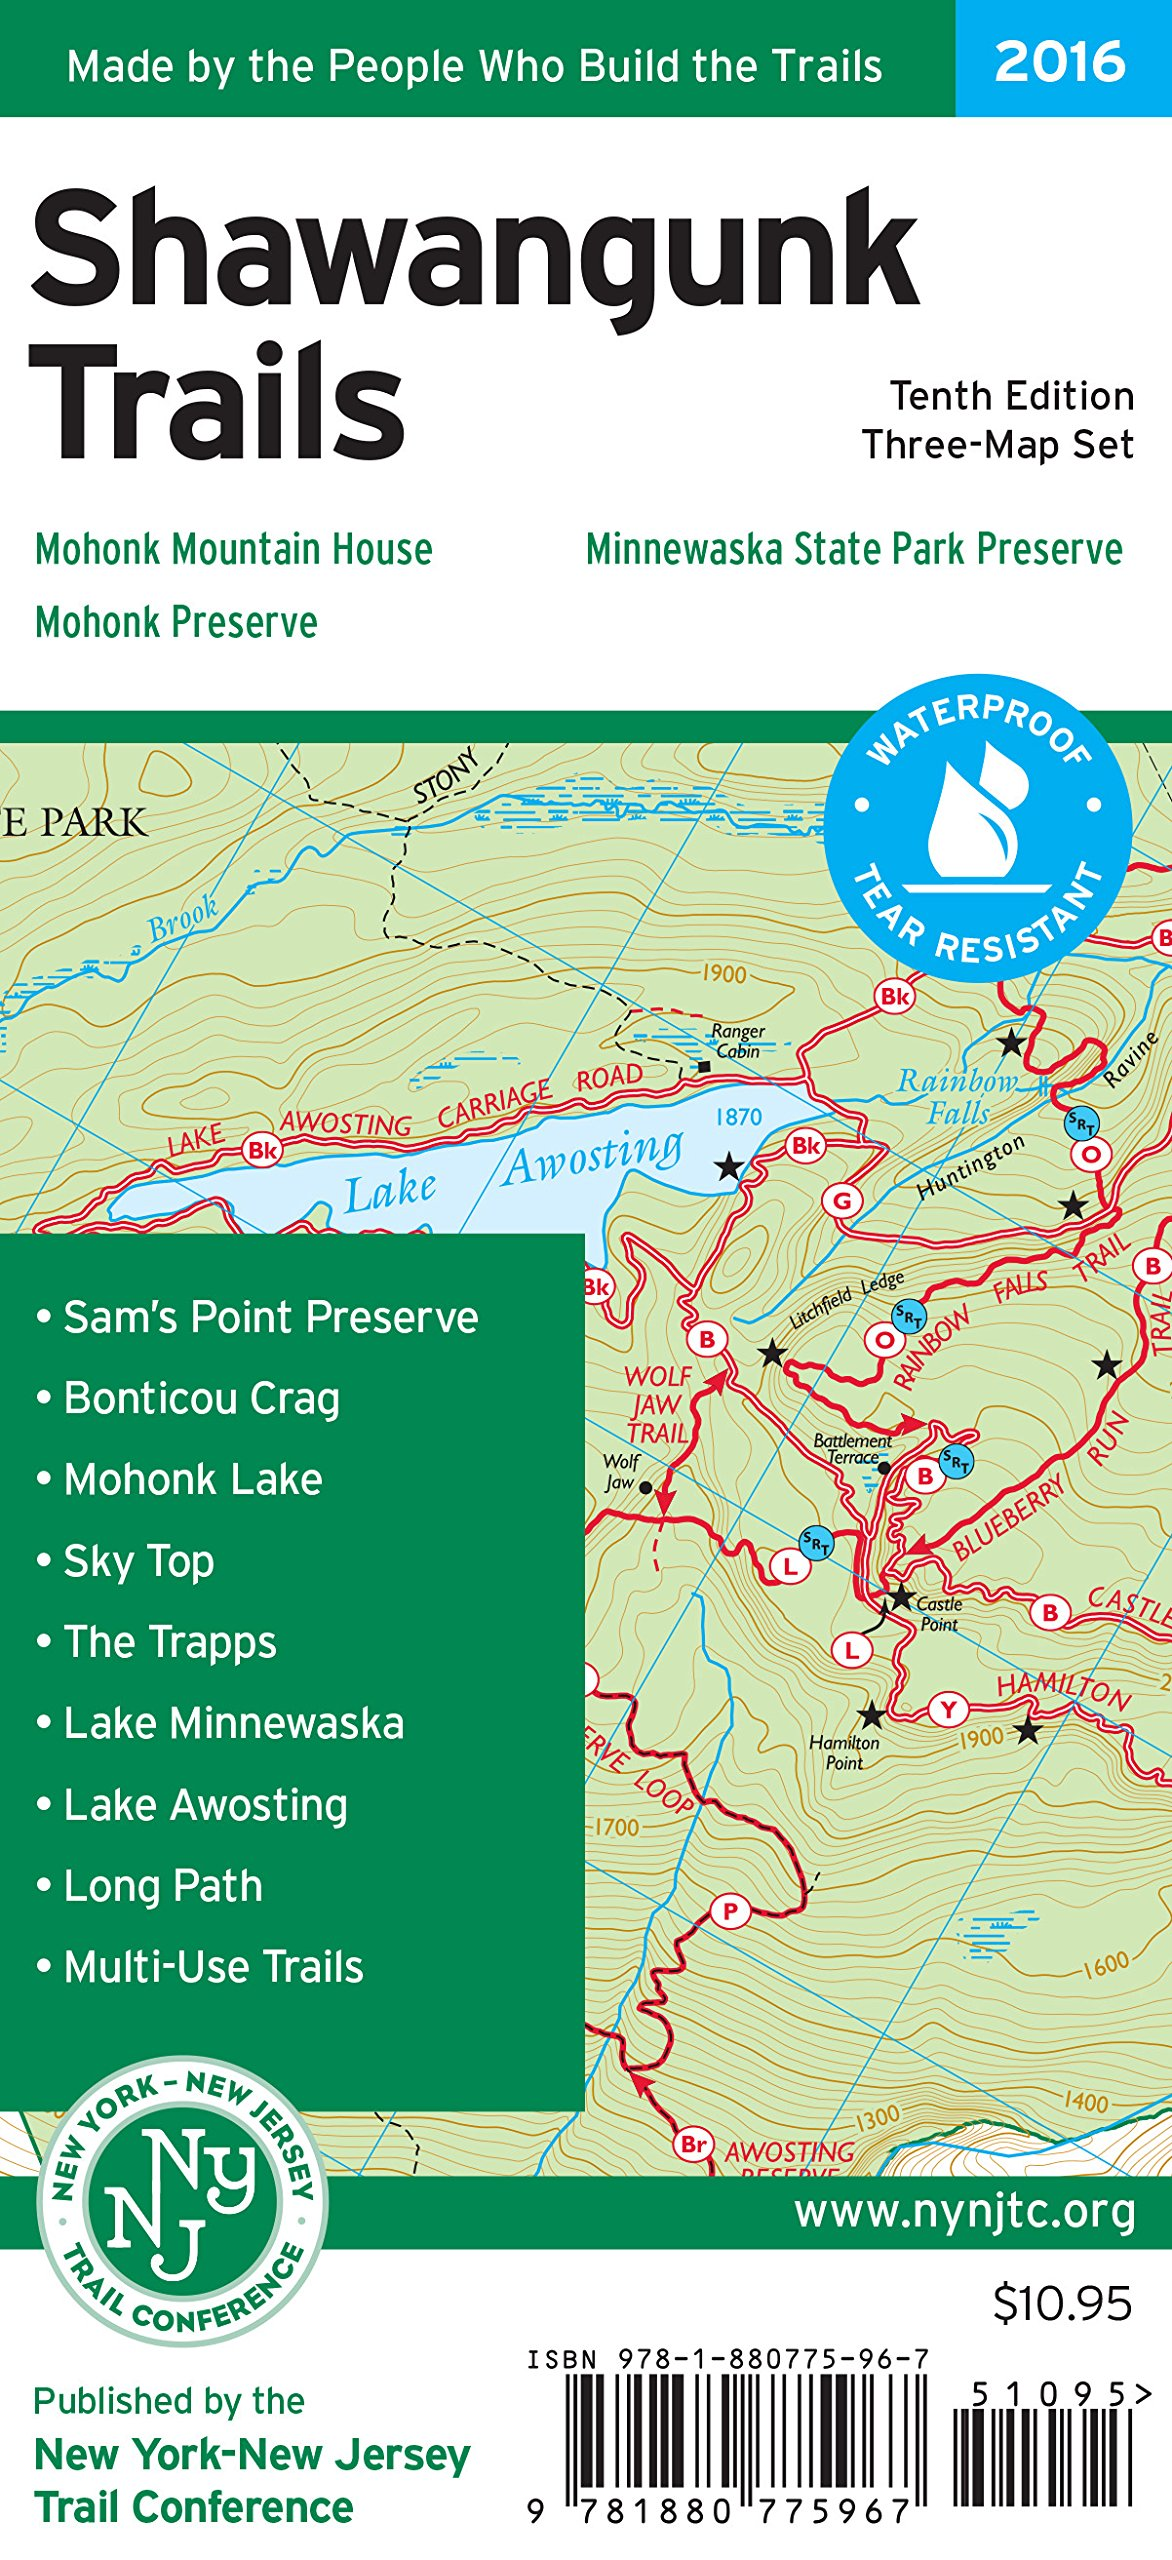 Shawangunk Trails Map: Minnewaska State Park Preserve ... on powder mountain map, deer mountain map, ascutney mountain resort map, titus mountain map, copper mountain map, mammoth mountain map, shirley mountain map, october mountain map, blue mountain ski area map, windham mountain map, bristol mountain map,